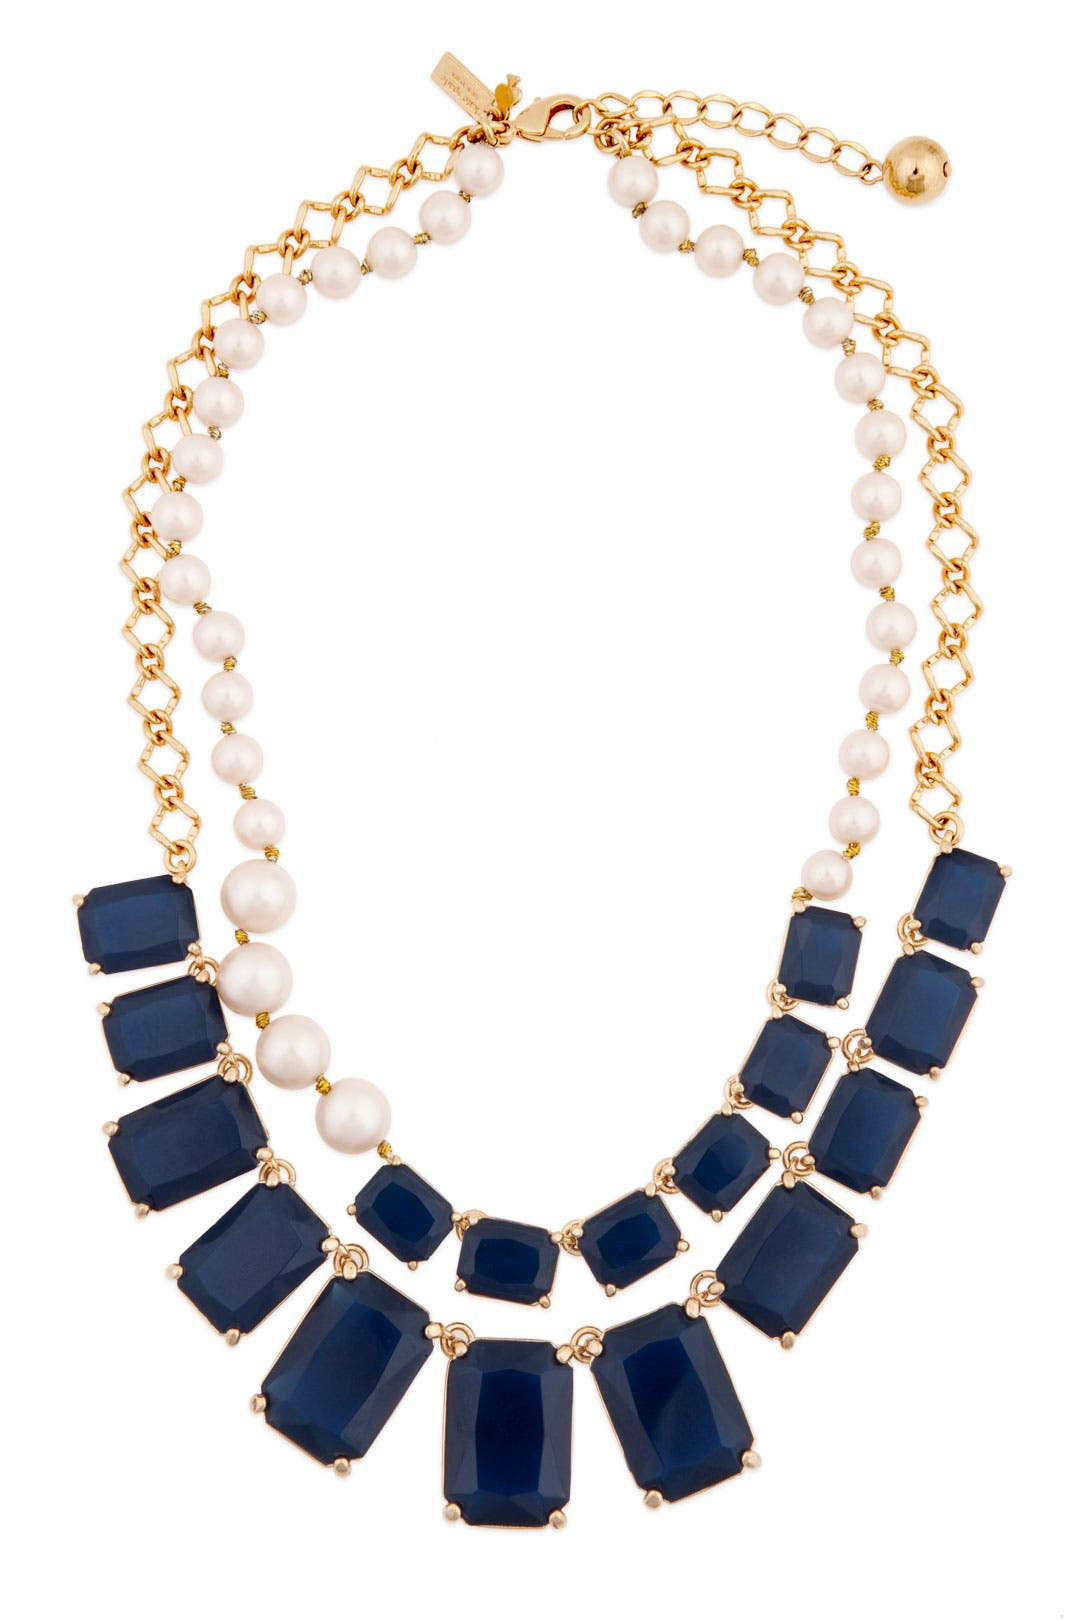 Sapphire Treasure Chest Necklace by kate spade new york accessories